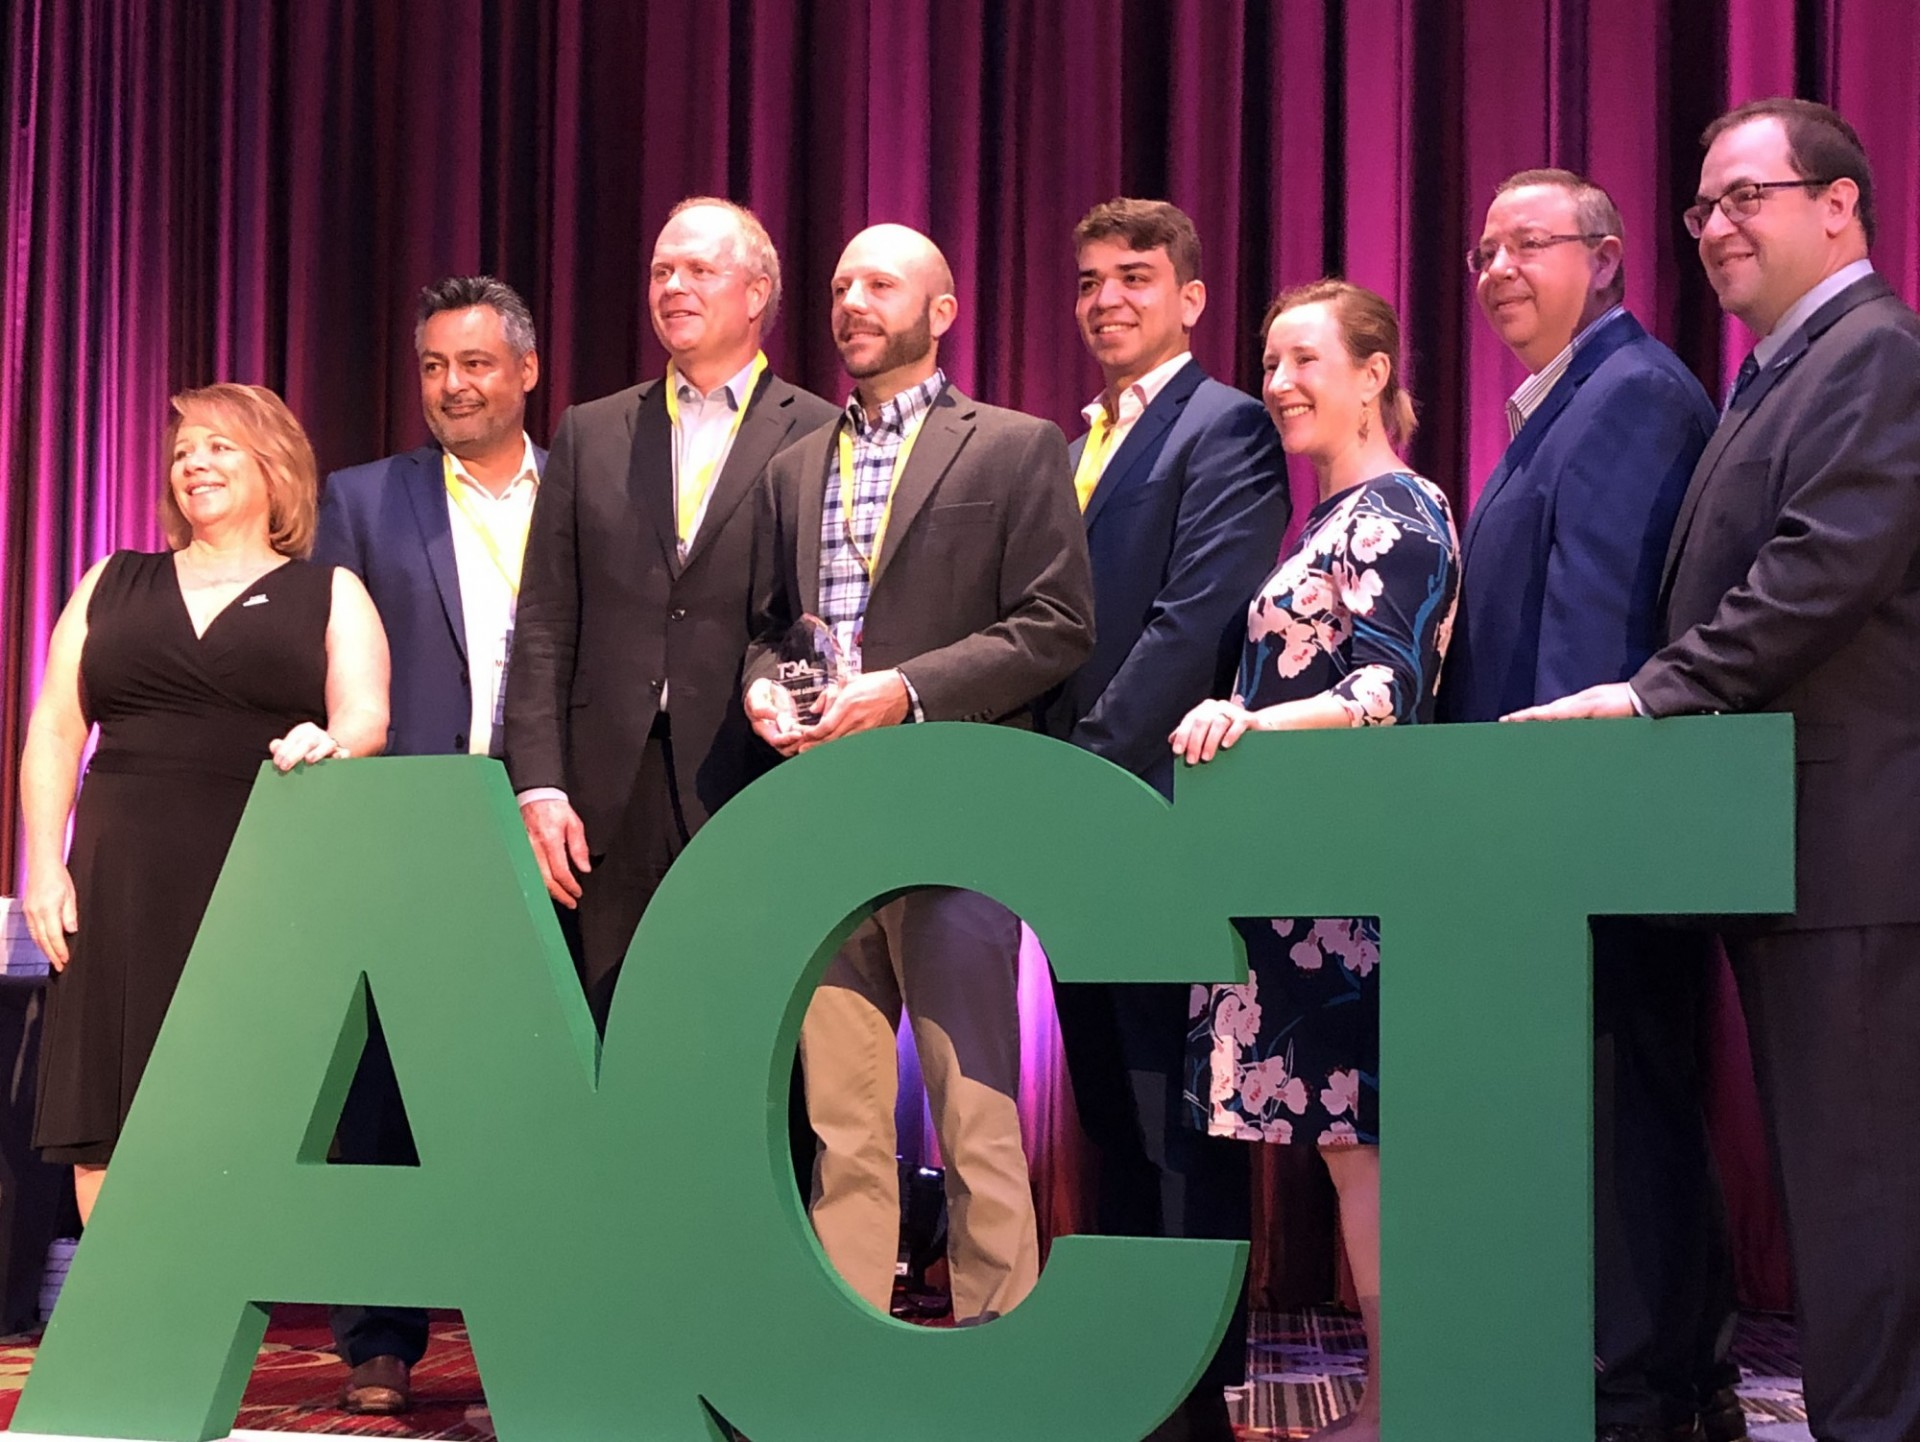 Columbia University representatives from the Transportation and Environmental Stewardship offices accept the award from ACT at the International Conference on August 7, 2019.